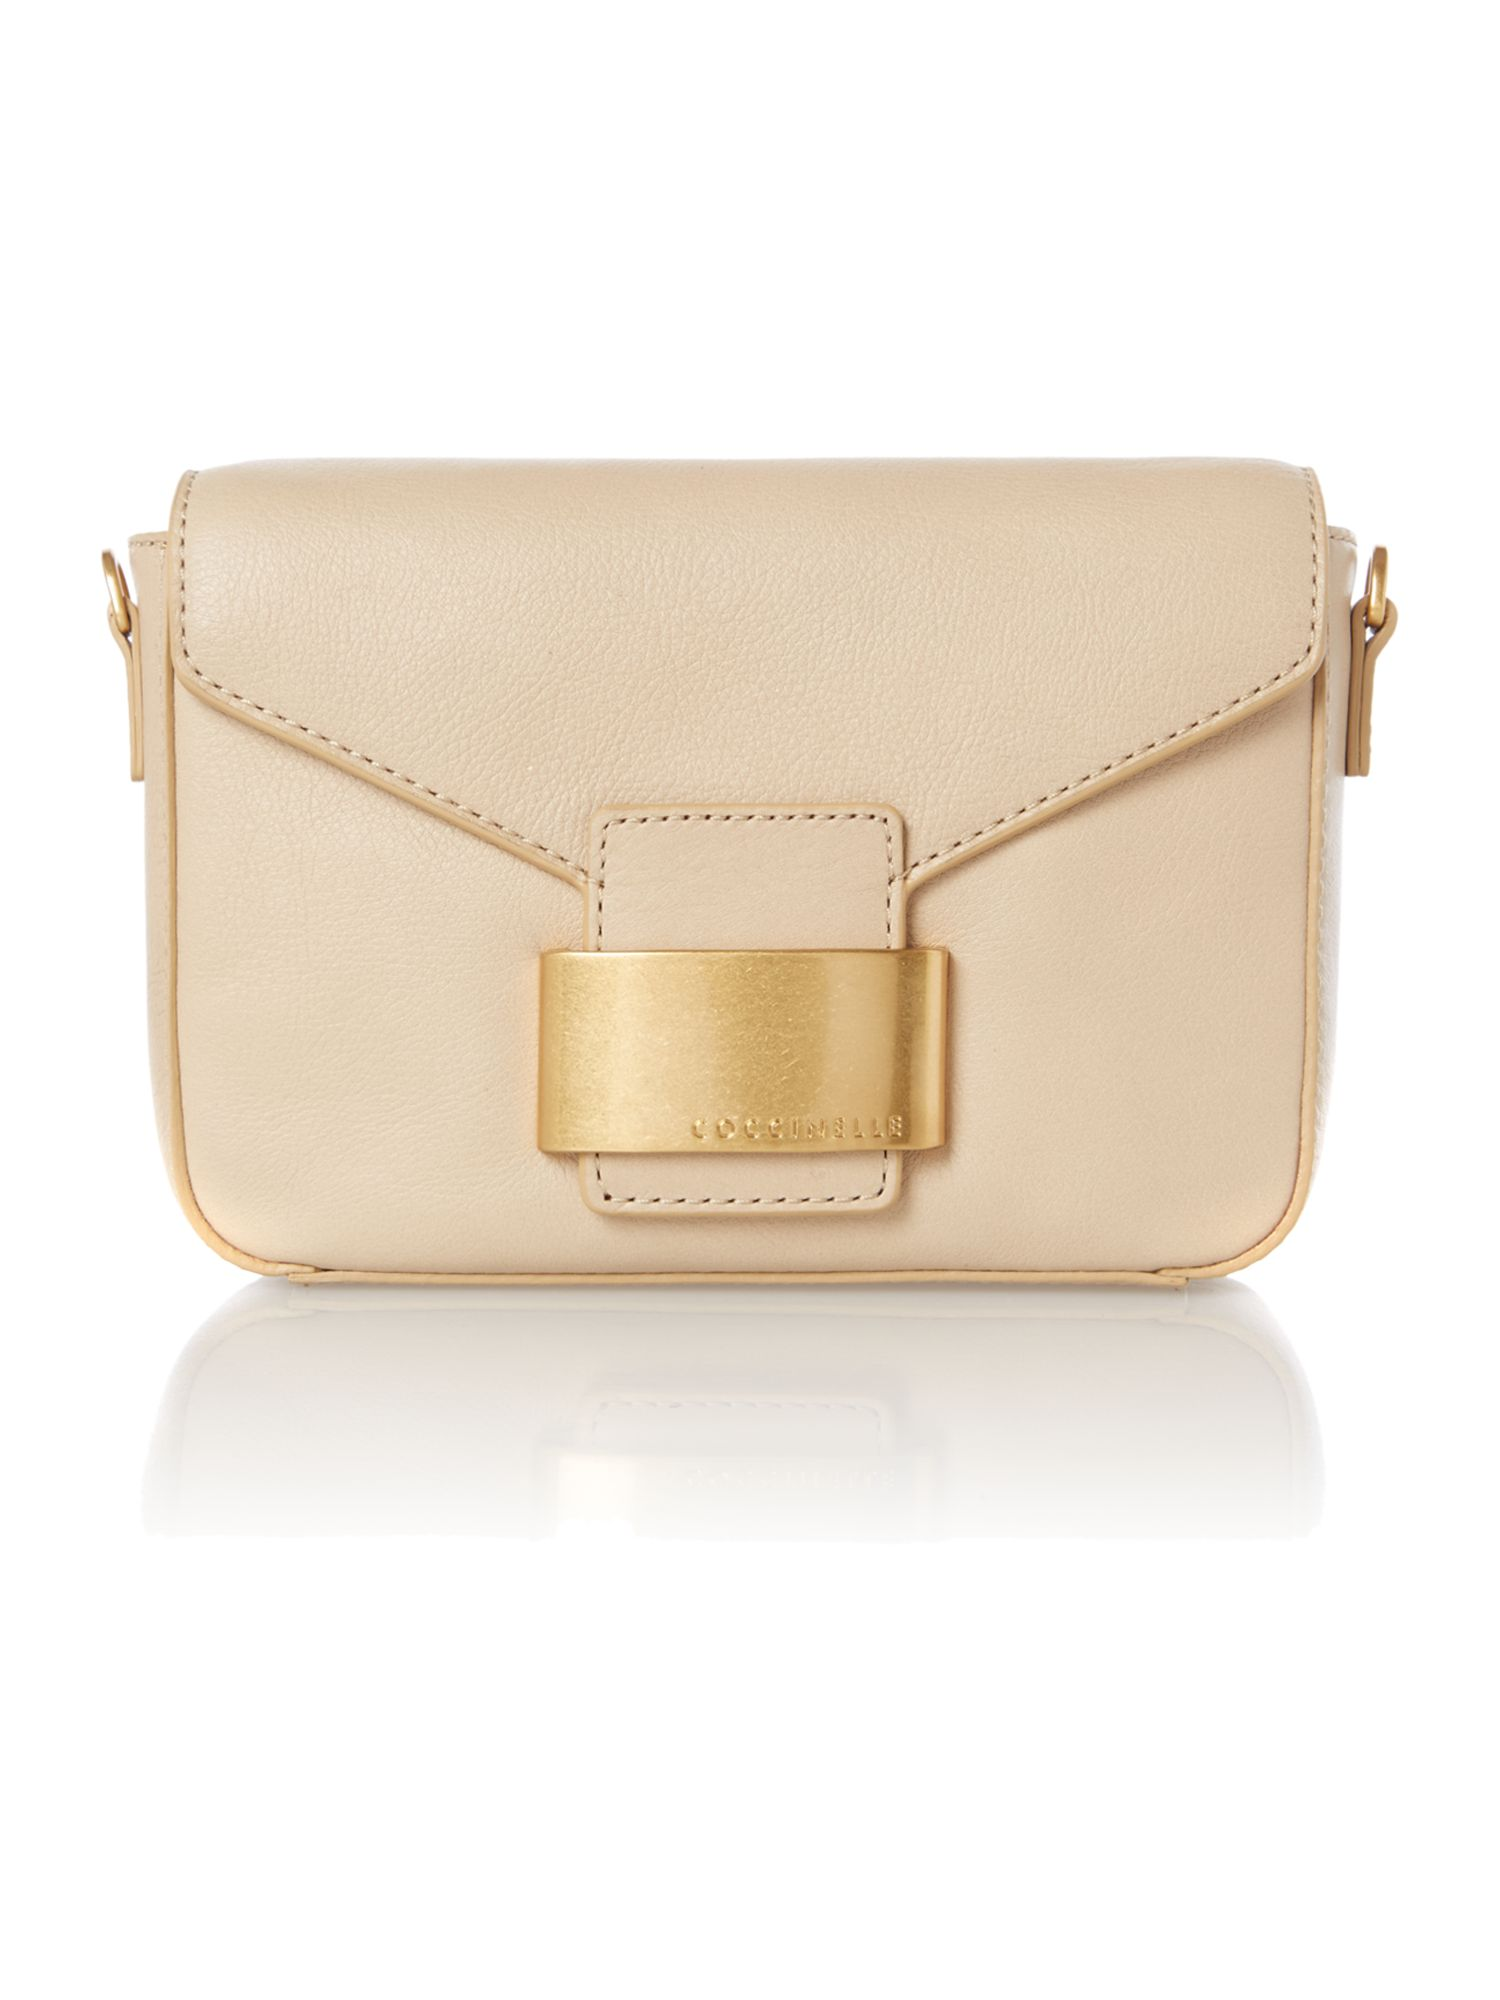 Nina tan small cross body bag